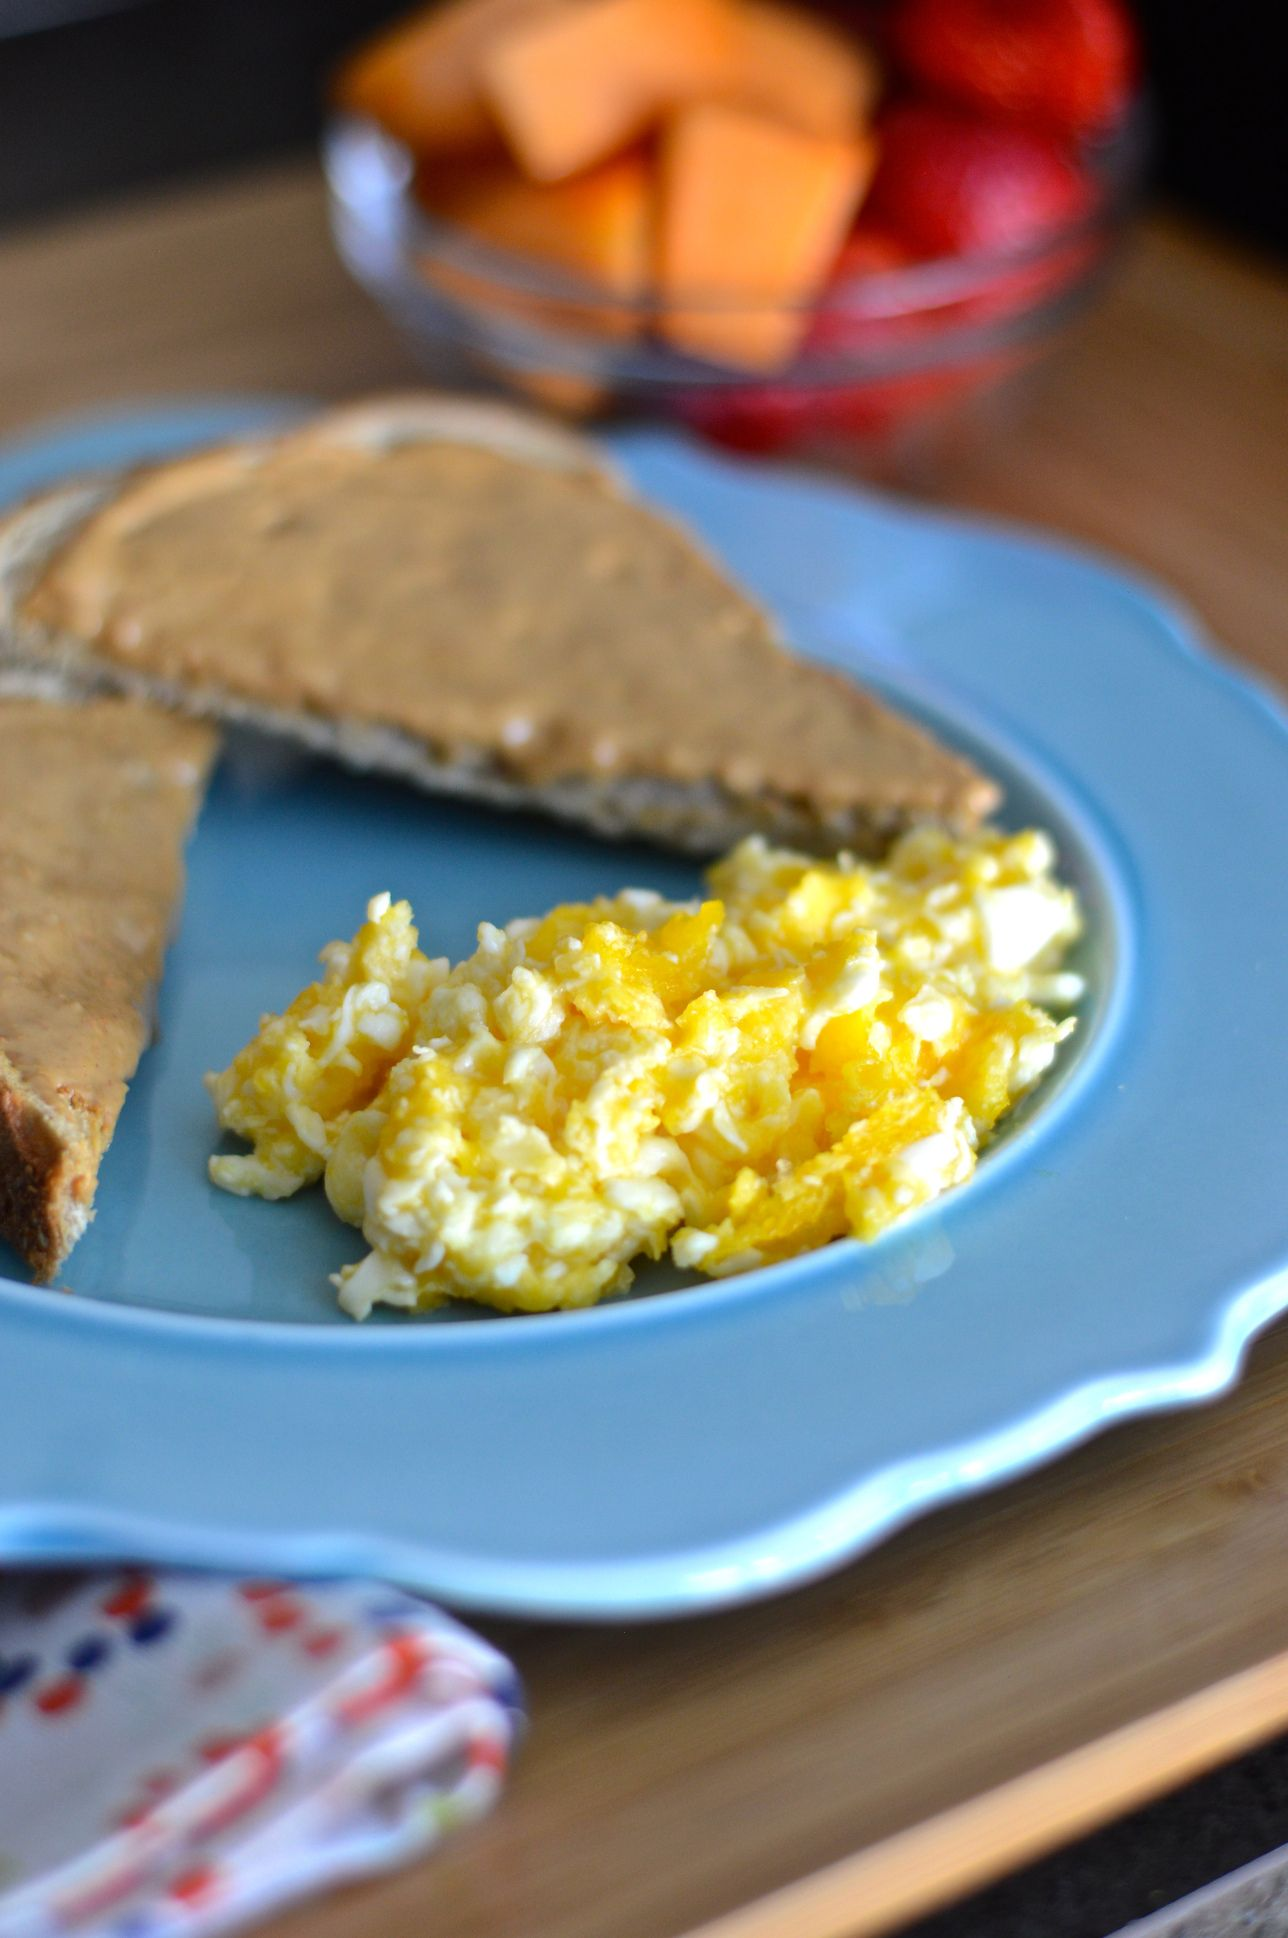 French Style Scramble Eggs With Whole Grain Toast And Peanut Butter 1 Cup Fruit 533 Kcal Month 5 Week 2